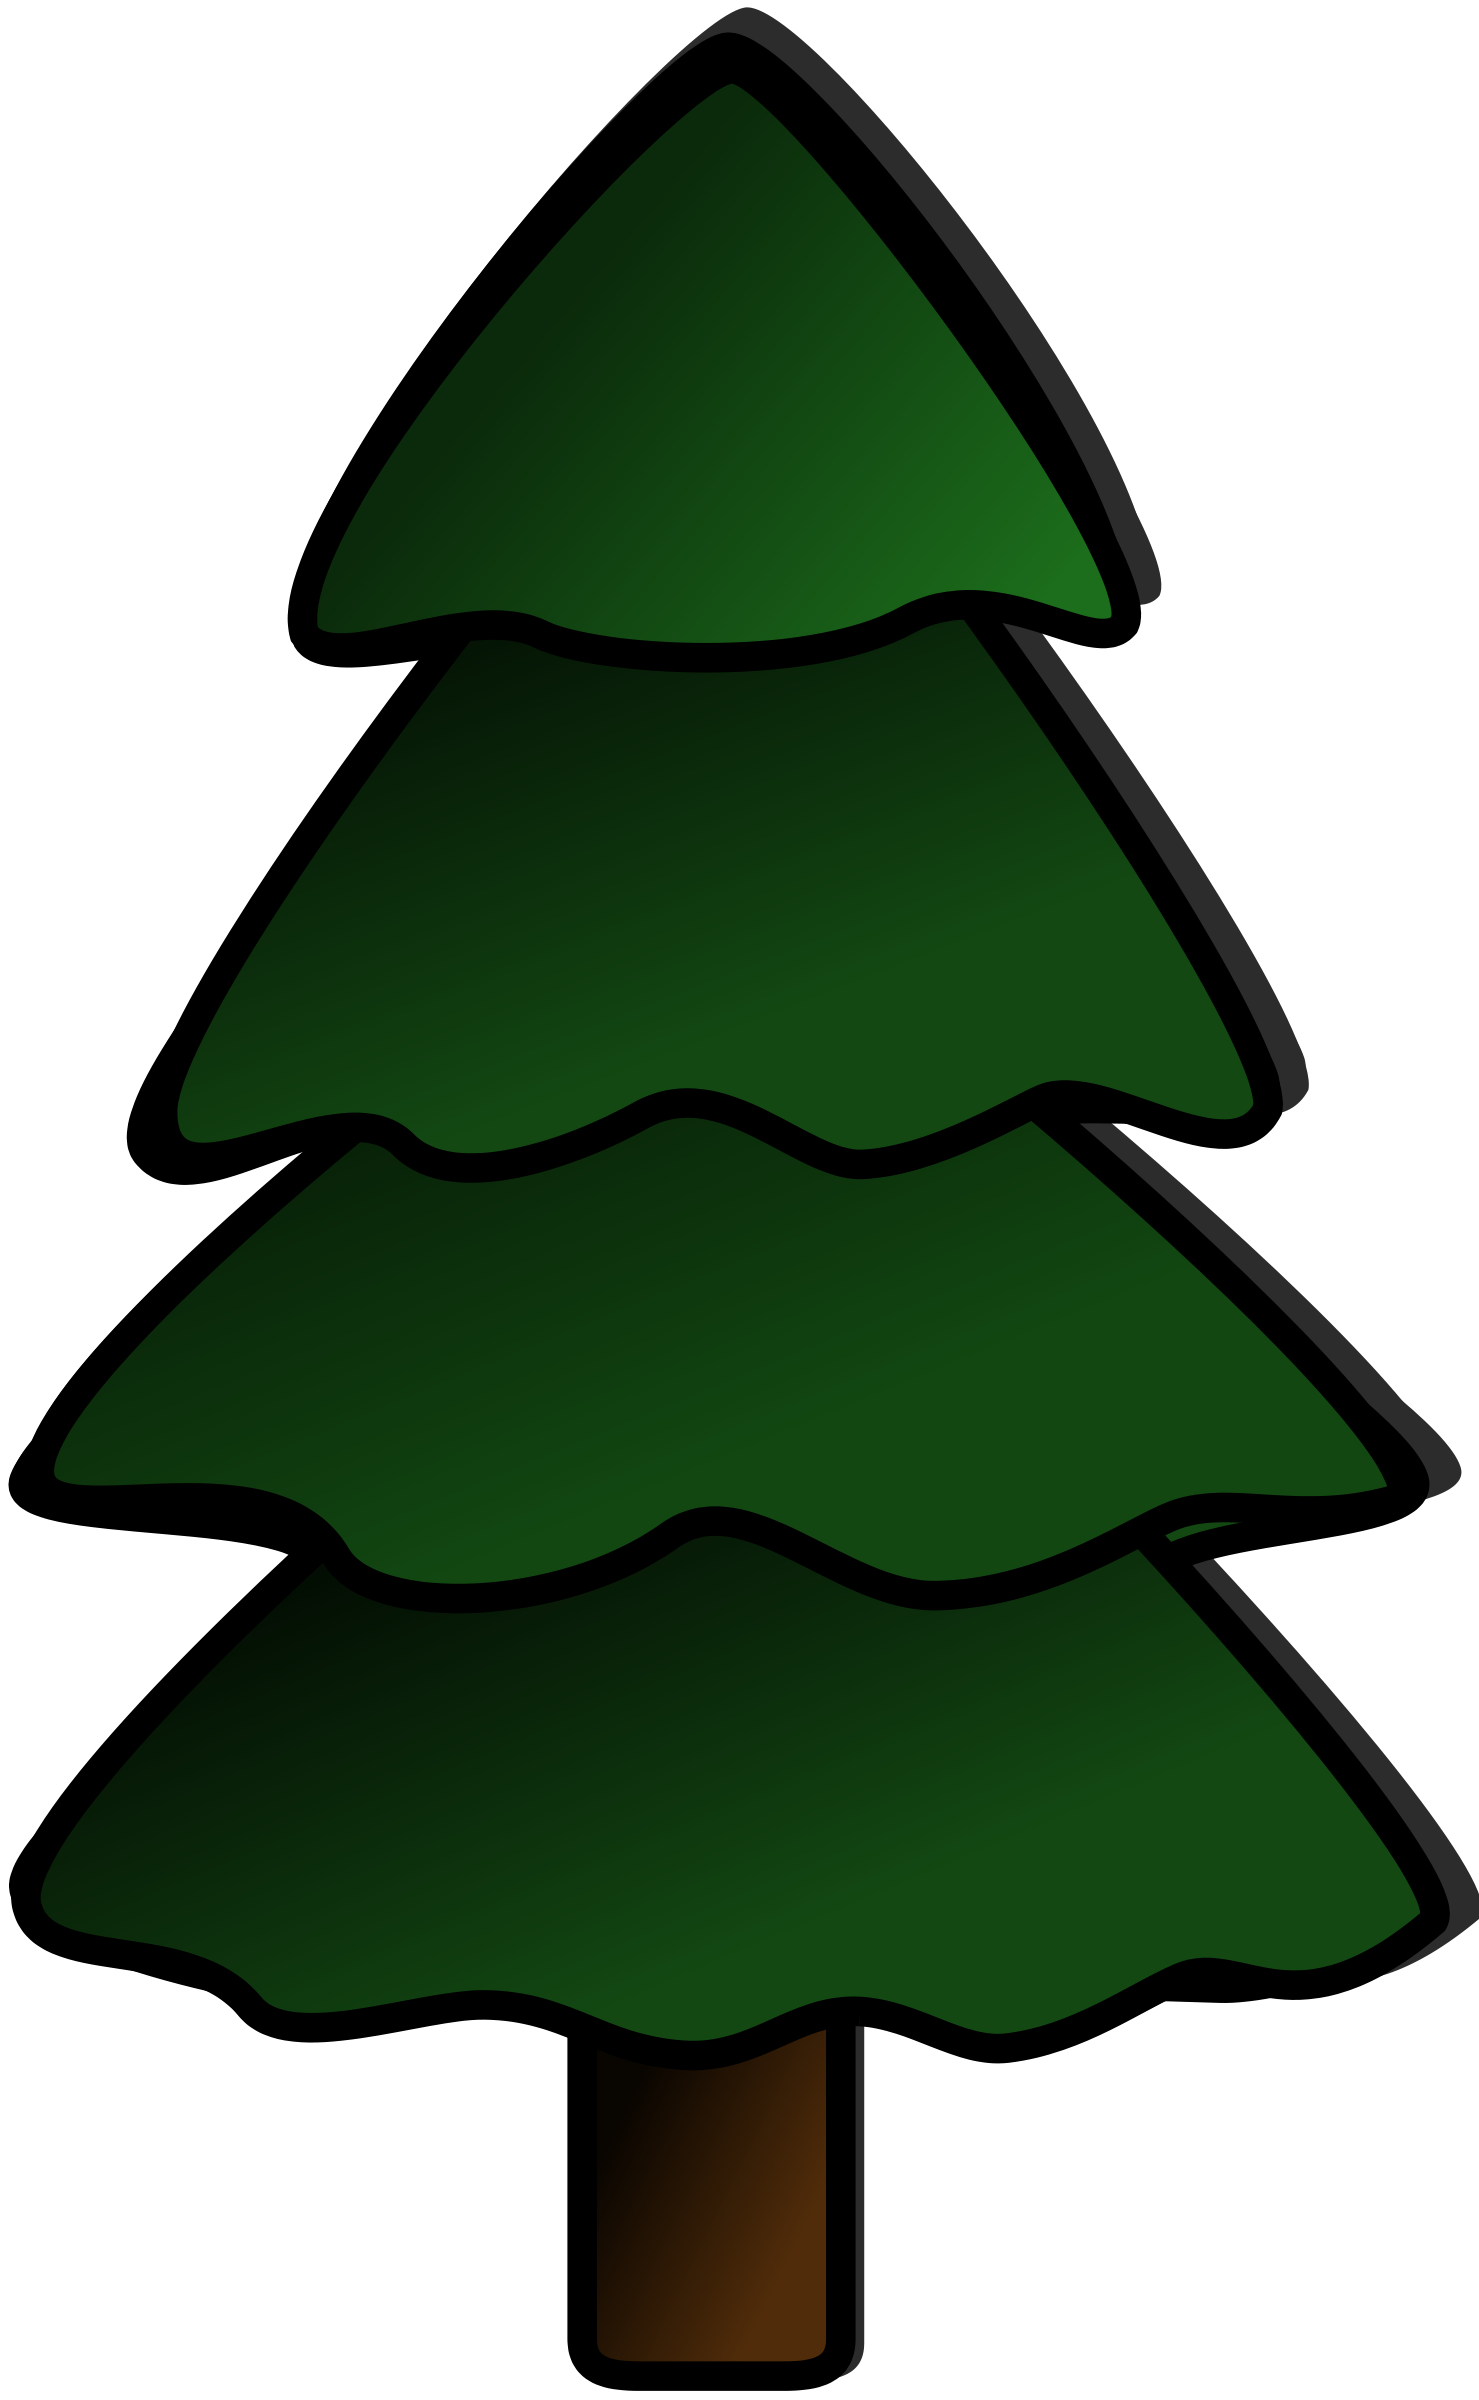 Wilderness clipart tress Art Pine tree Clip Collection